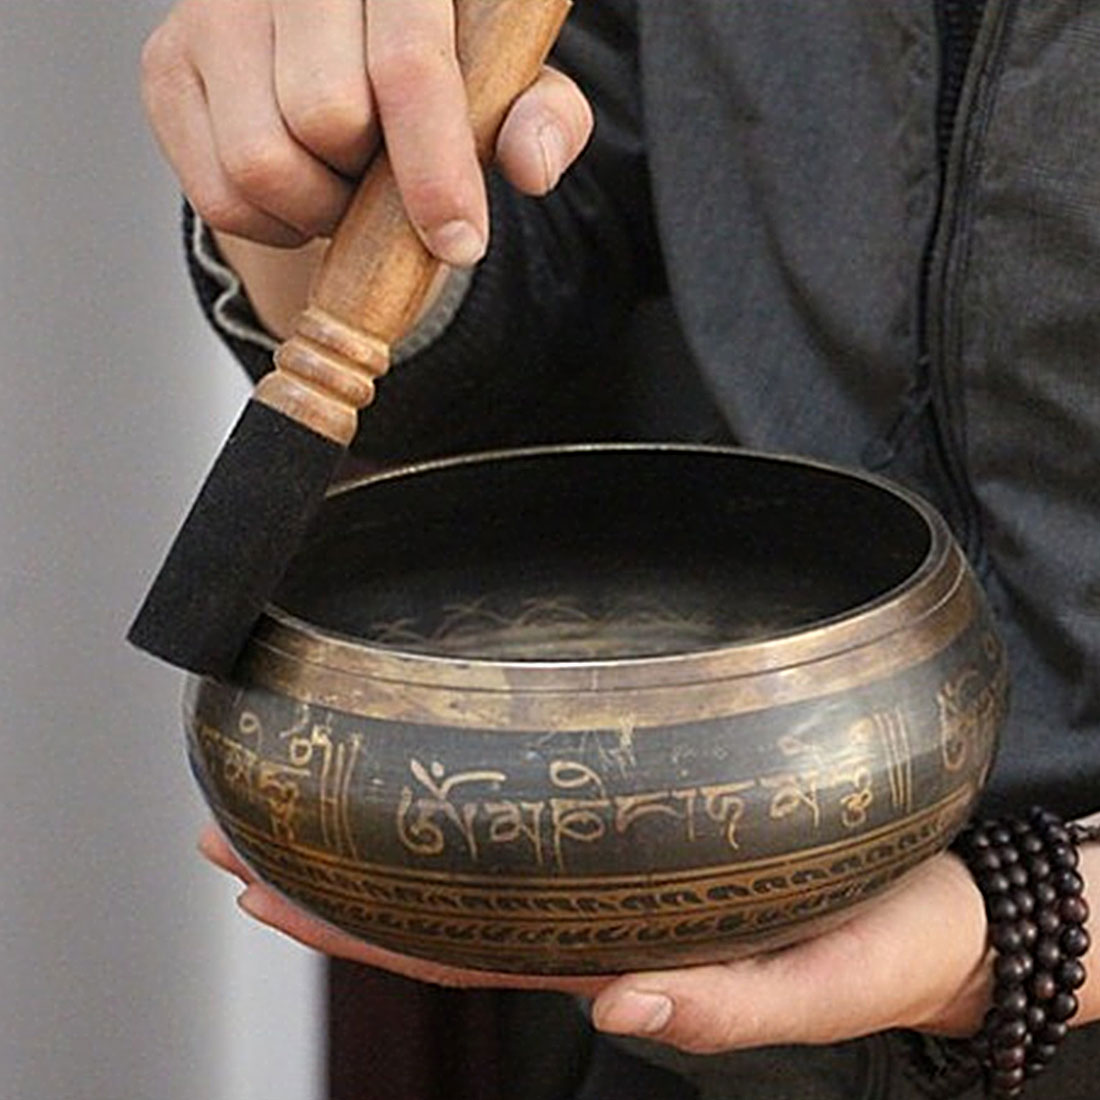 Tibetan Bowl Singing Bowl Decorative-wall-dishes Home Decoration Decorative Wall Dishes Tibetan Singing Bowl